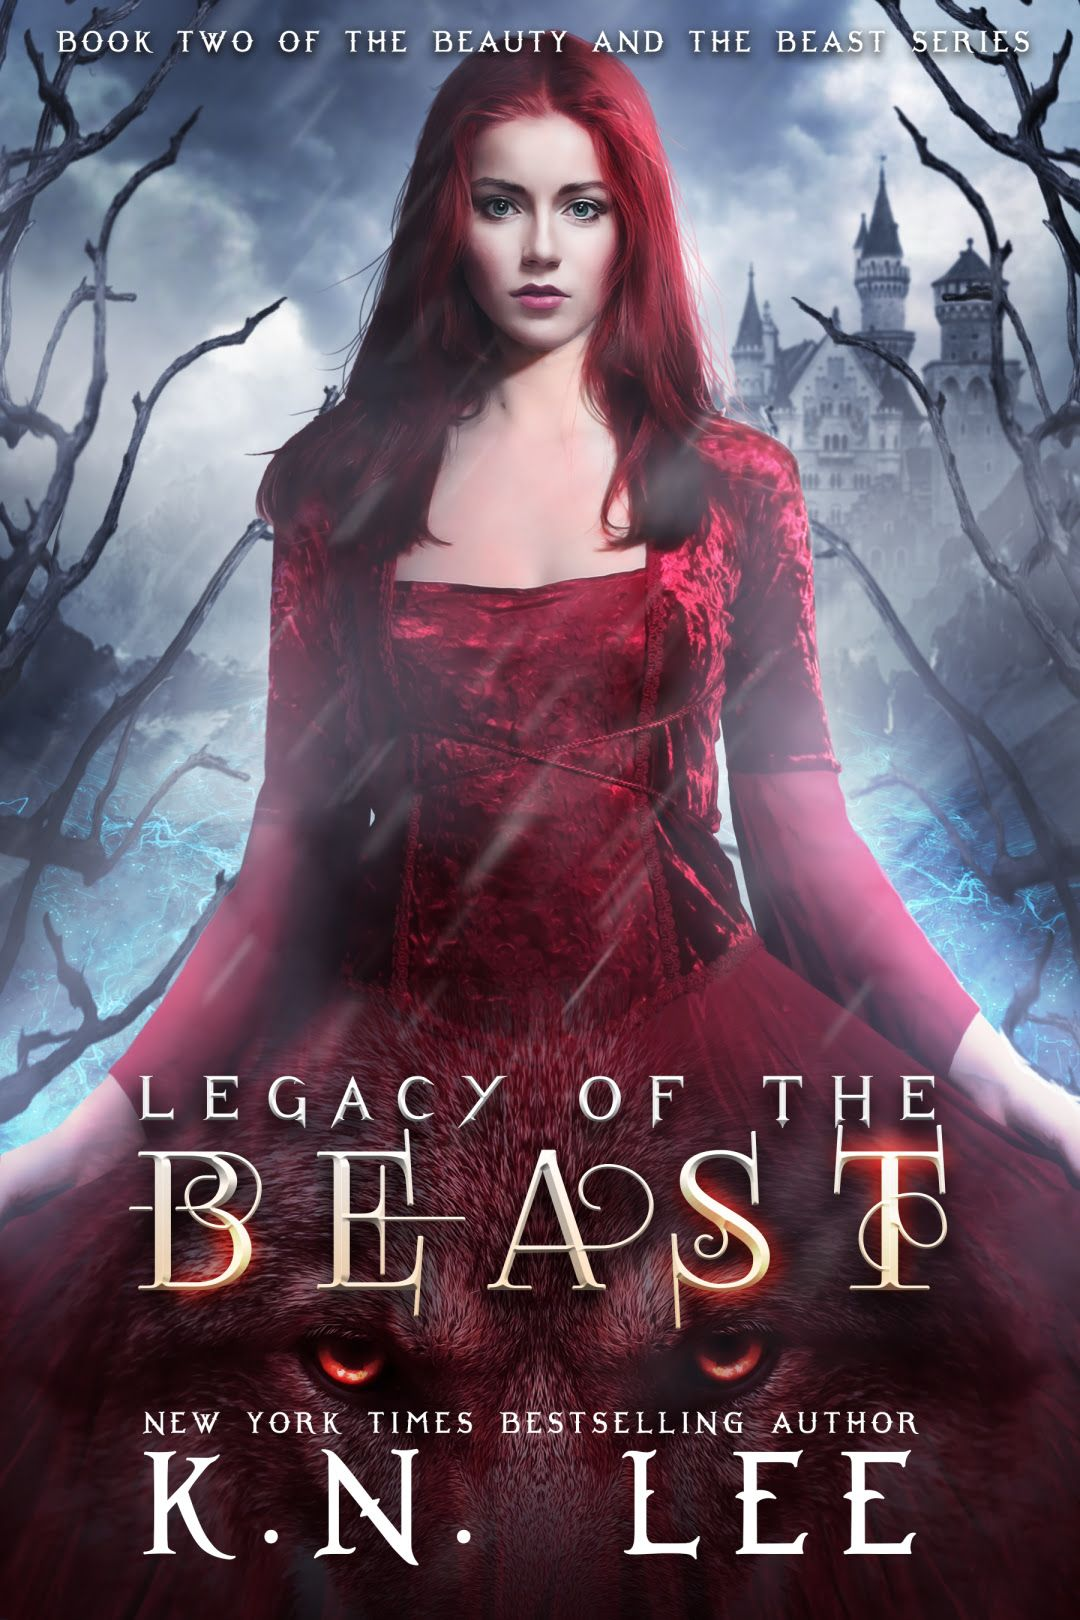 Quick! The Scarlett Legacy is FREE Today Only! - thebookjunkiereads@gmail.com - Gmail